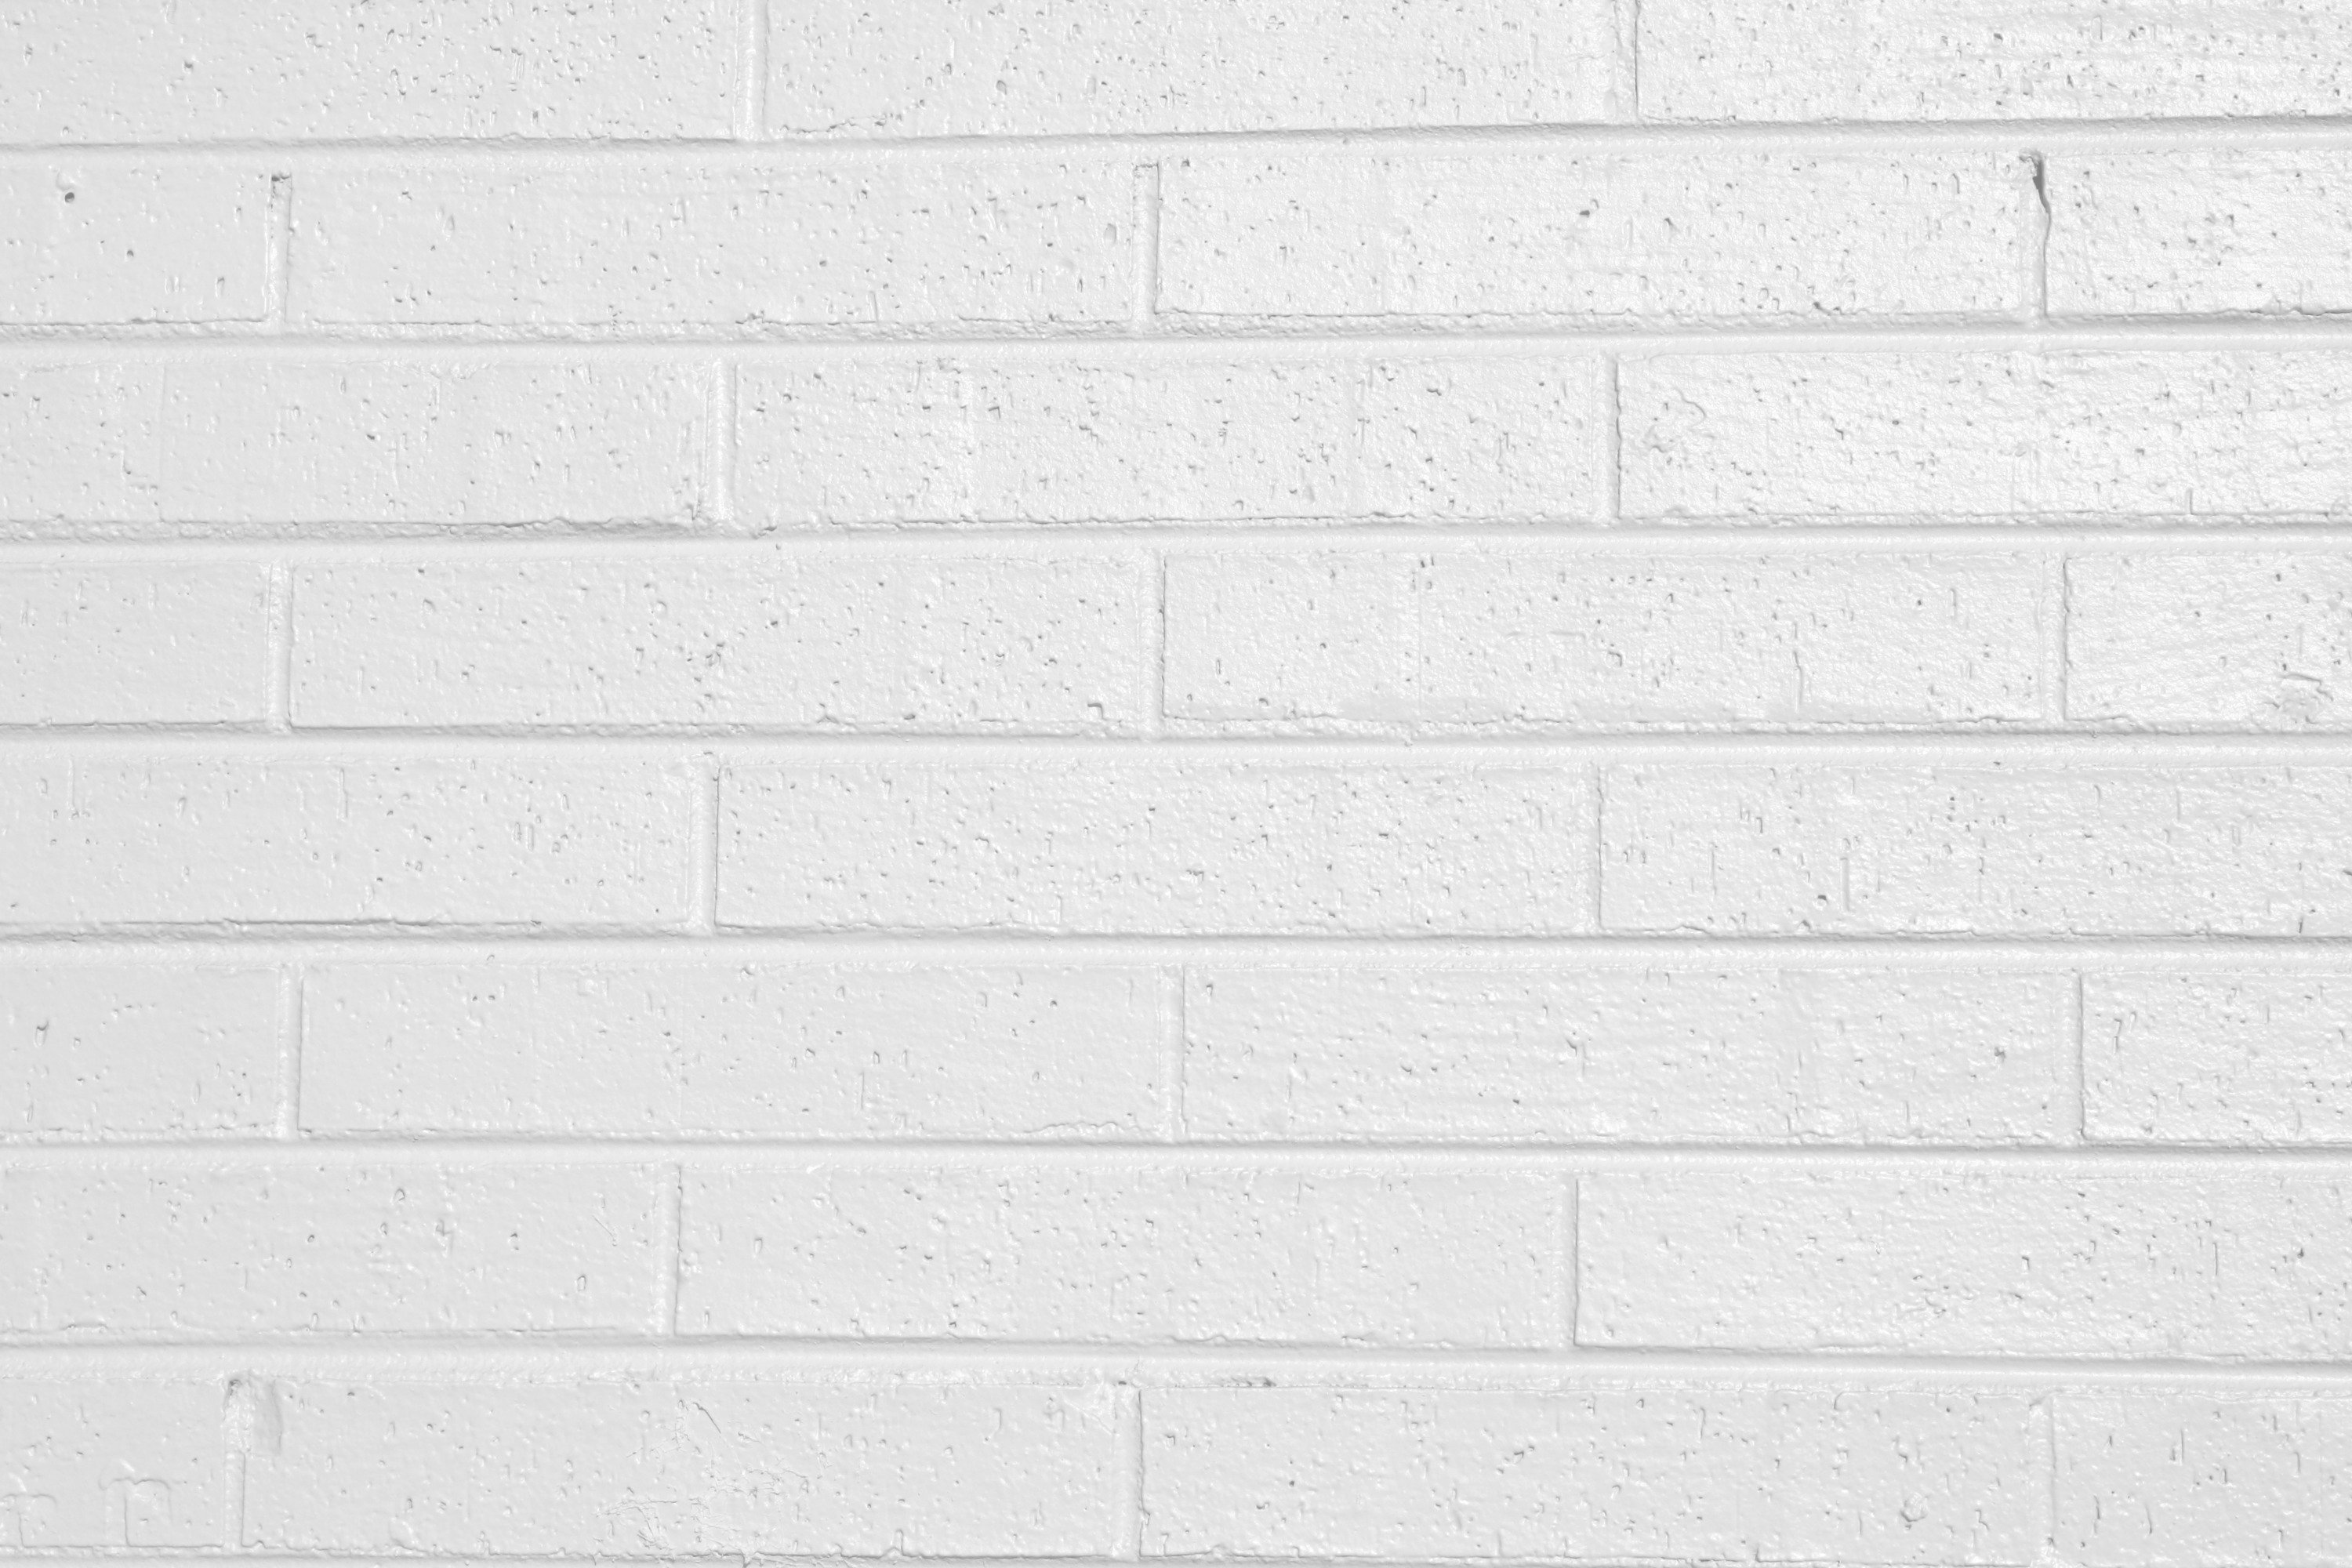 Design Painted Brick Texture white painted brick wall texture picture free photograph photos texture